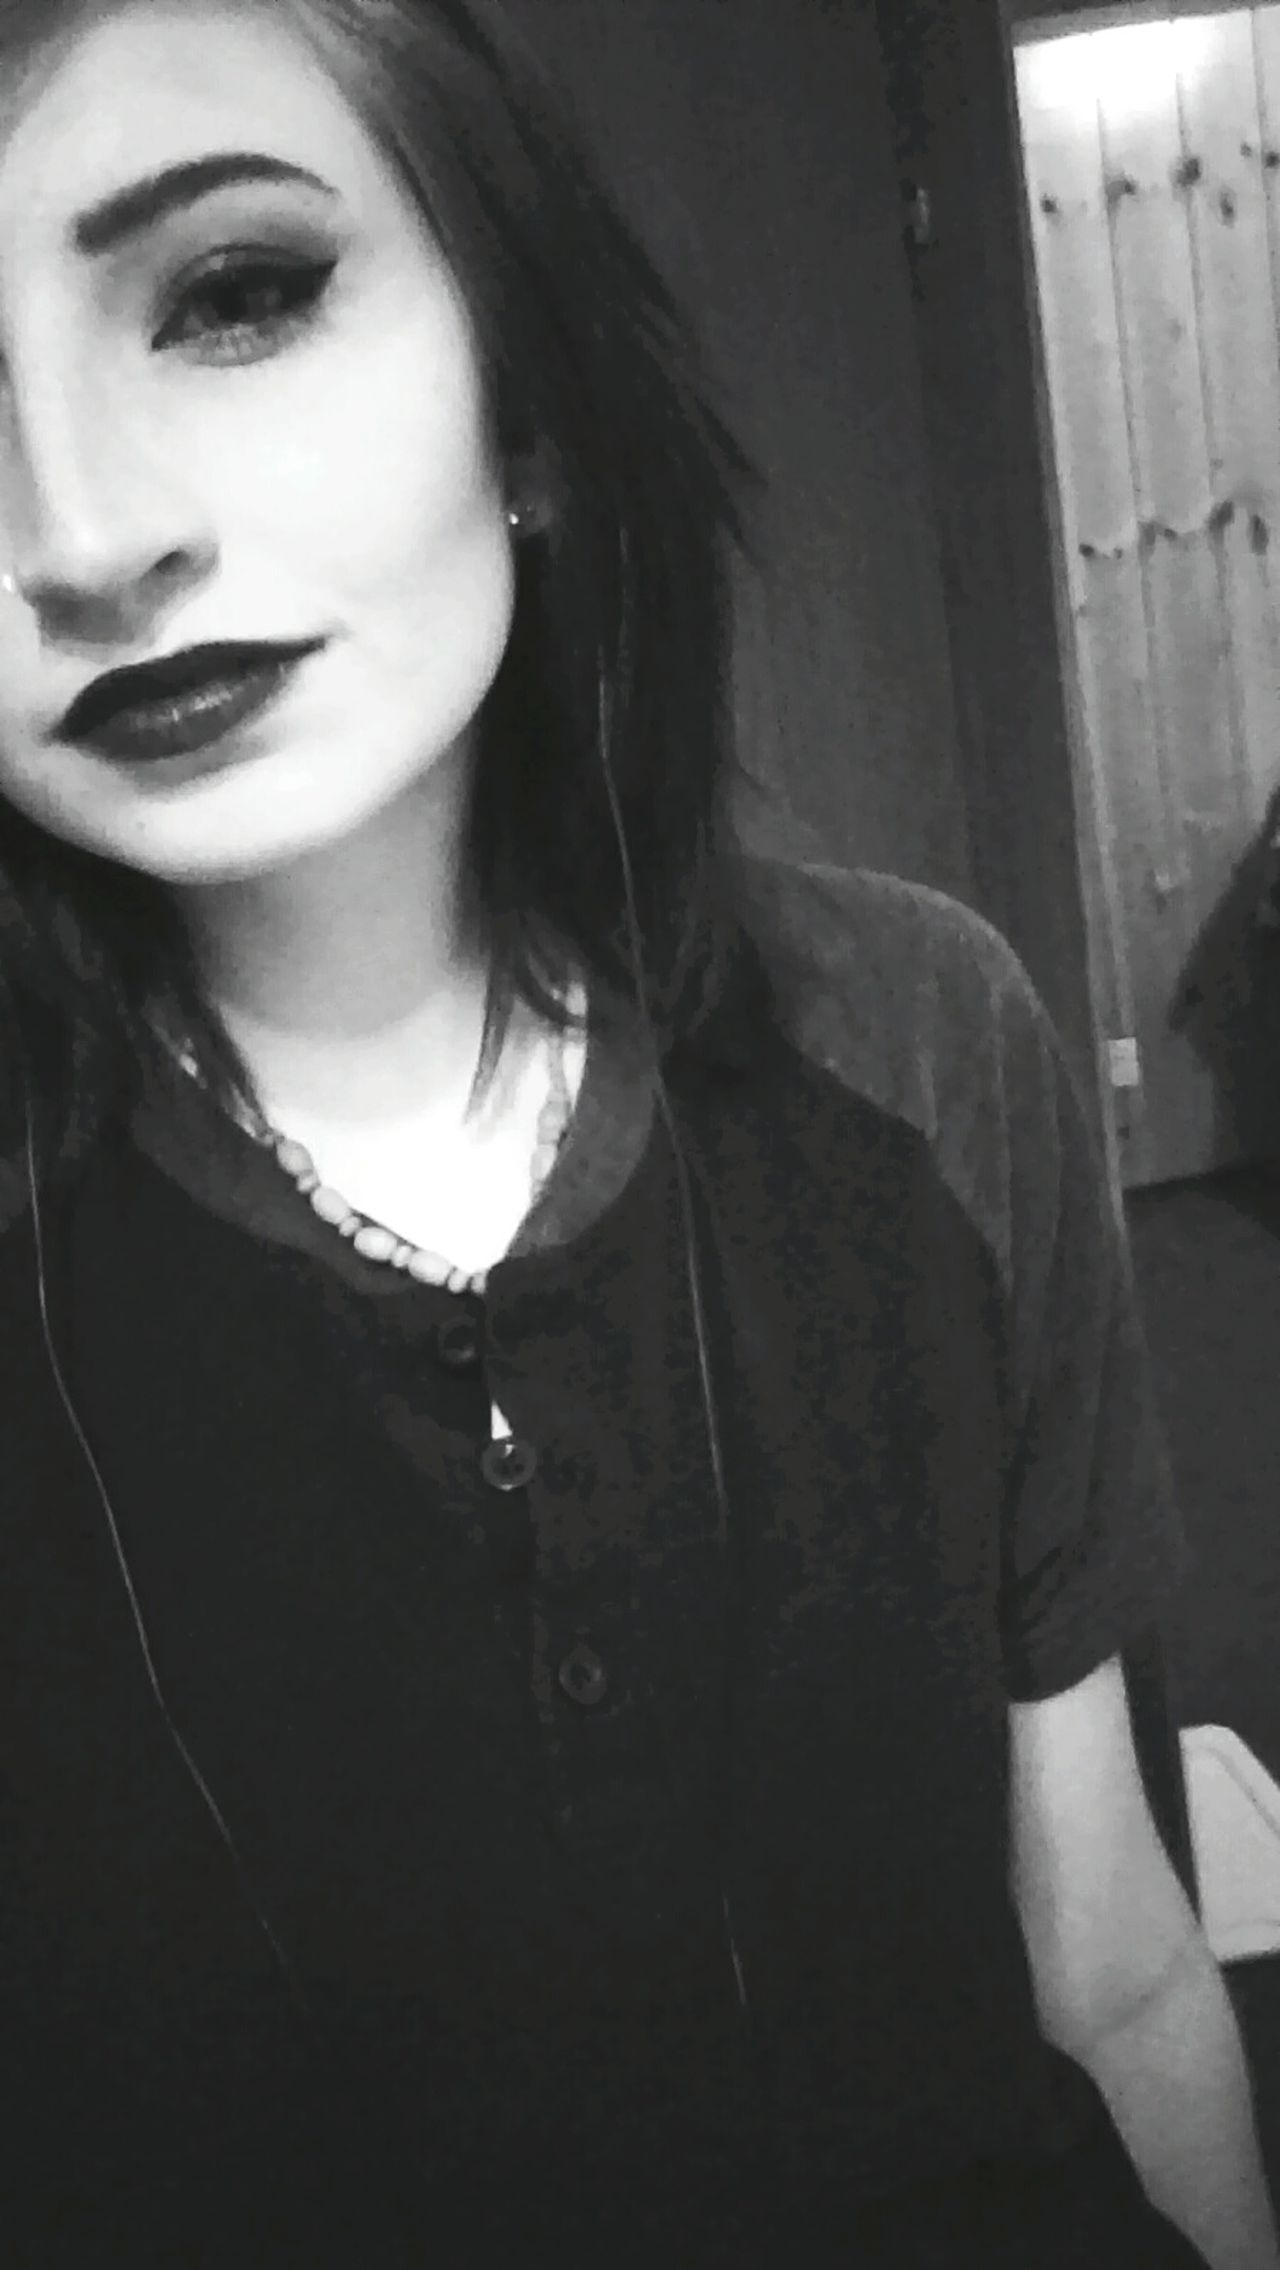 😈😈 Green Color Front View Casual Clothing One Person Smiling Grunge Effect Dark Spooky Rebel Music Adults Only Grungeroom Rebelpunk GrungeStyle Black Color Grunge Selfie Black Lipstick  High Angle View Multi Colored Mysterious Girl Black Night Creepy